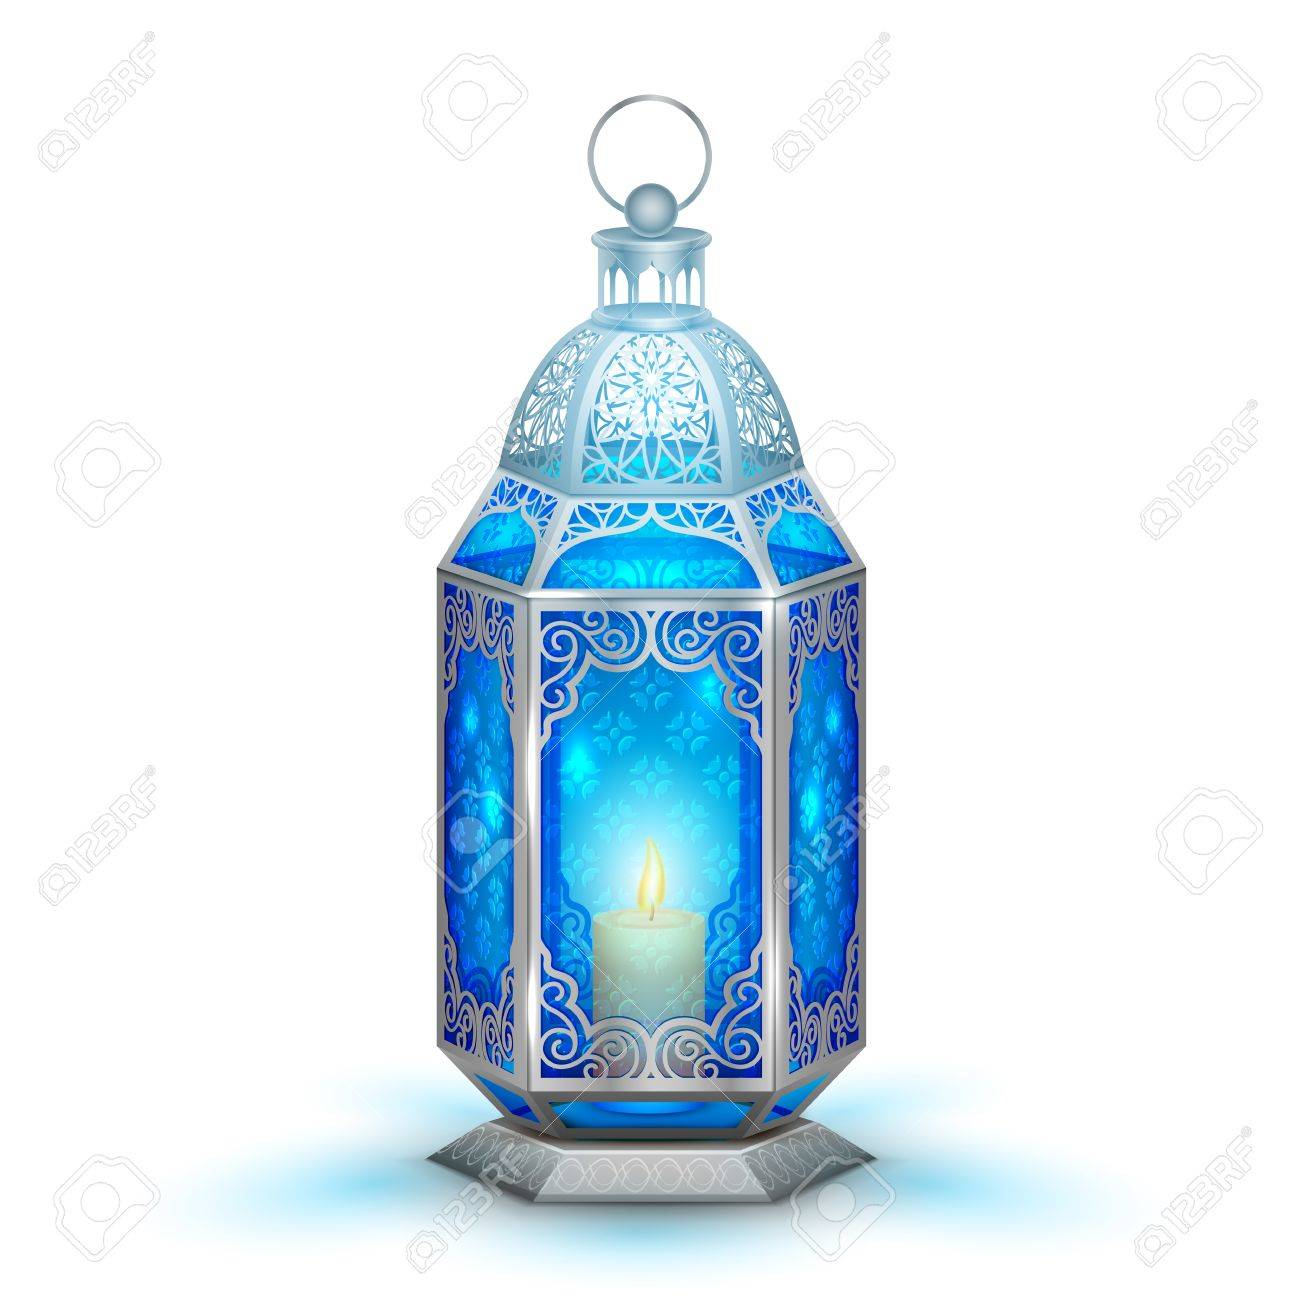 illustration of illuminated lamp on ramadan kareem generous royalty free cliparts vectors and stock illustration image 29558371 illustration of illuminated lamp on ramadan kareem generous